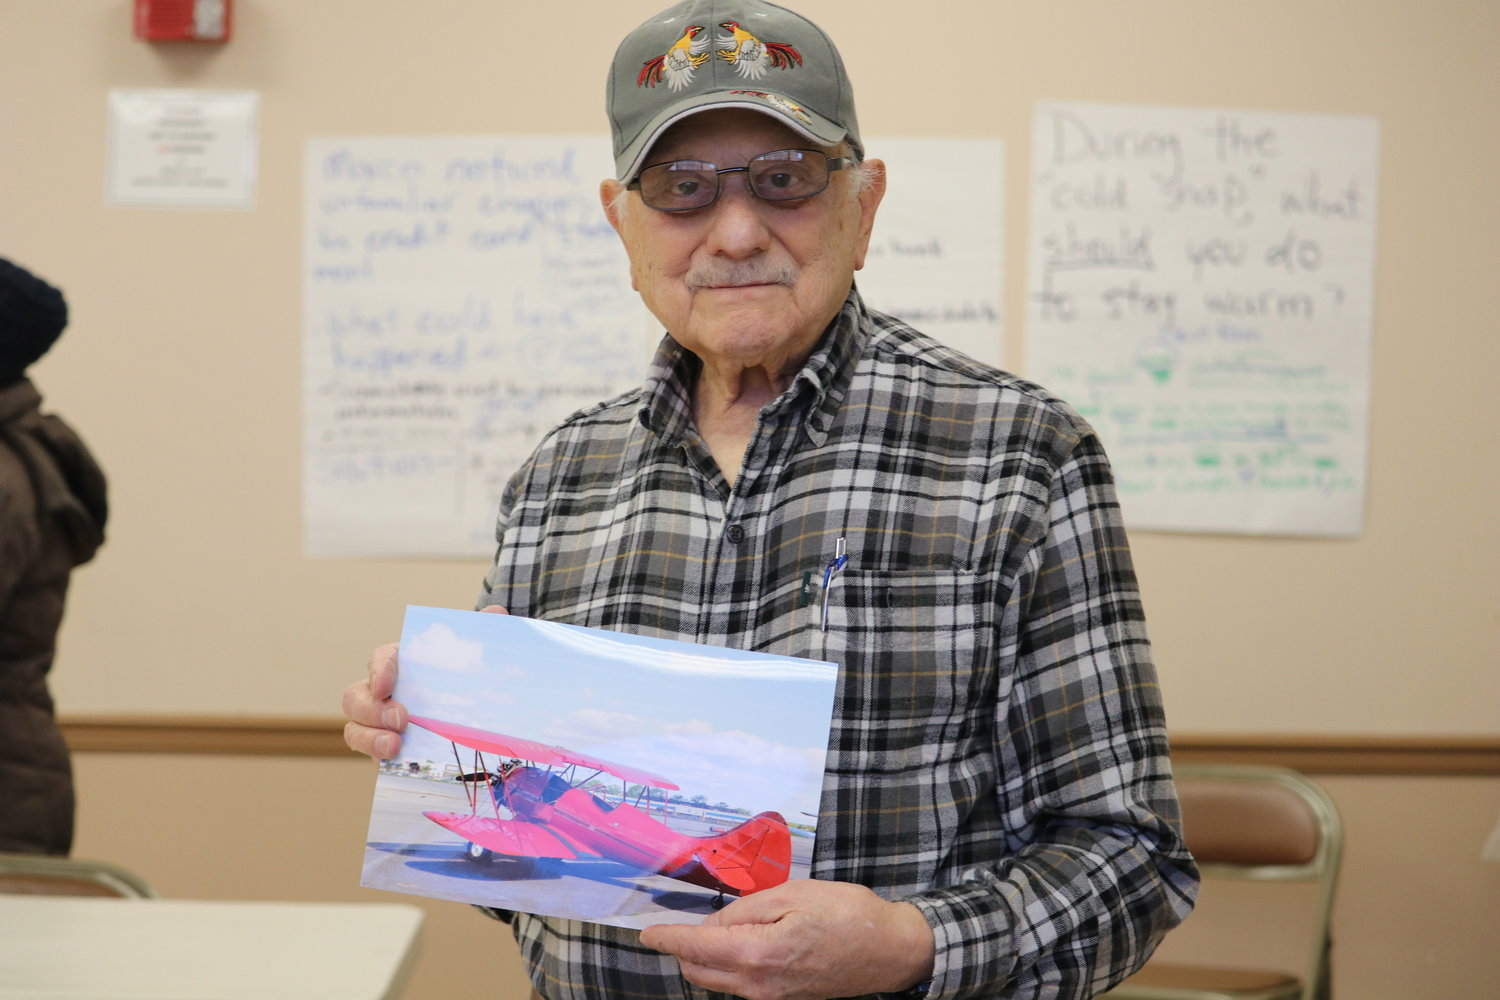 Joseph Cirina, 86, showed a photo of the remanufactured Waco UPF-7 biplane, that he flew in 2018. This airplane was originally manufactured from 1937 to 1942.